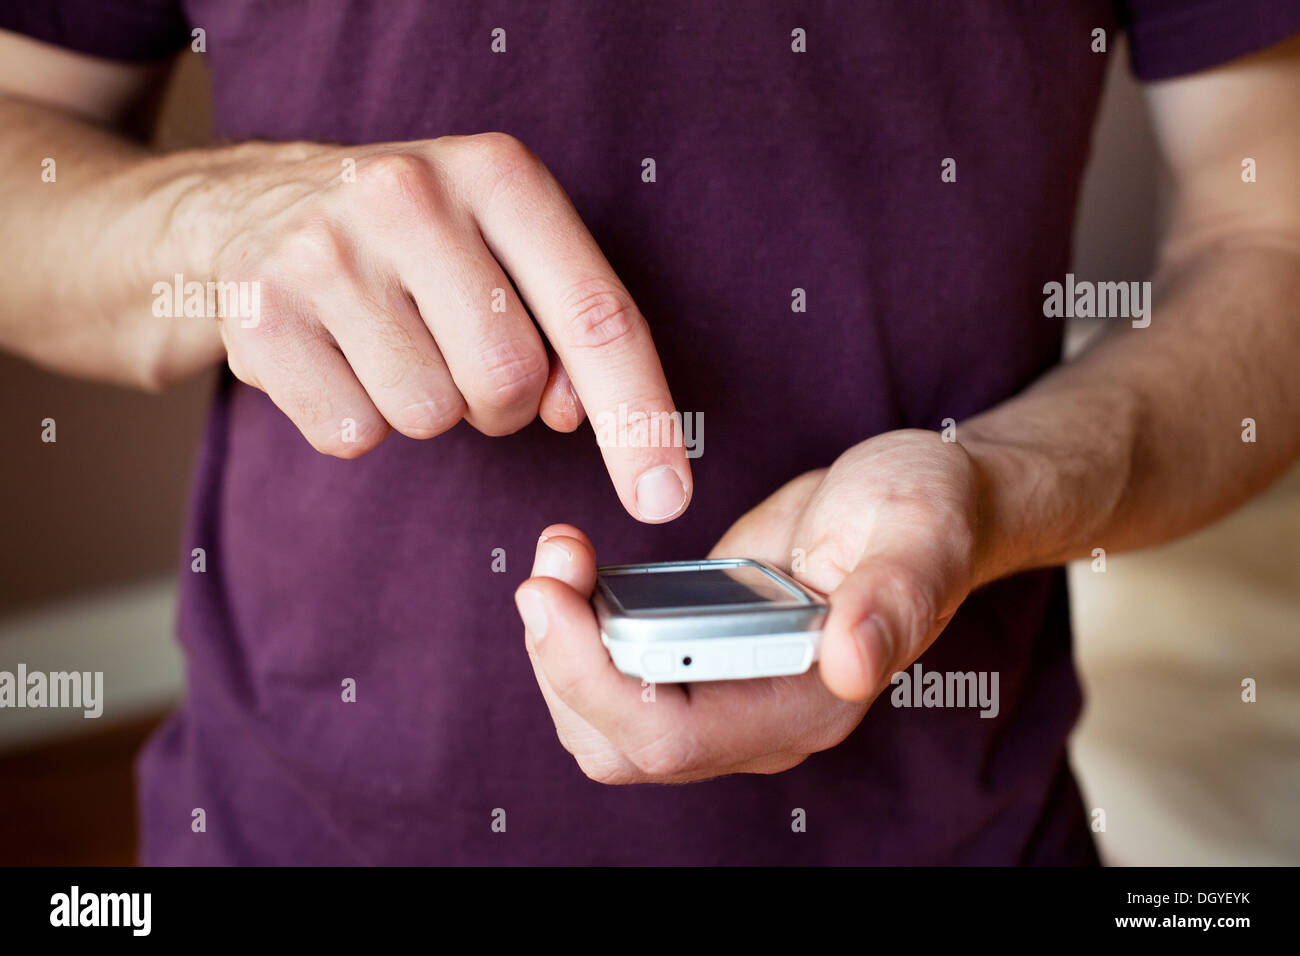 Man with smartphone - Stock Image